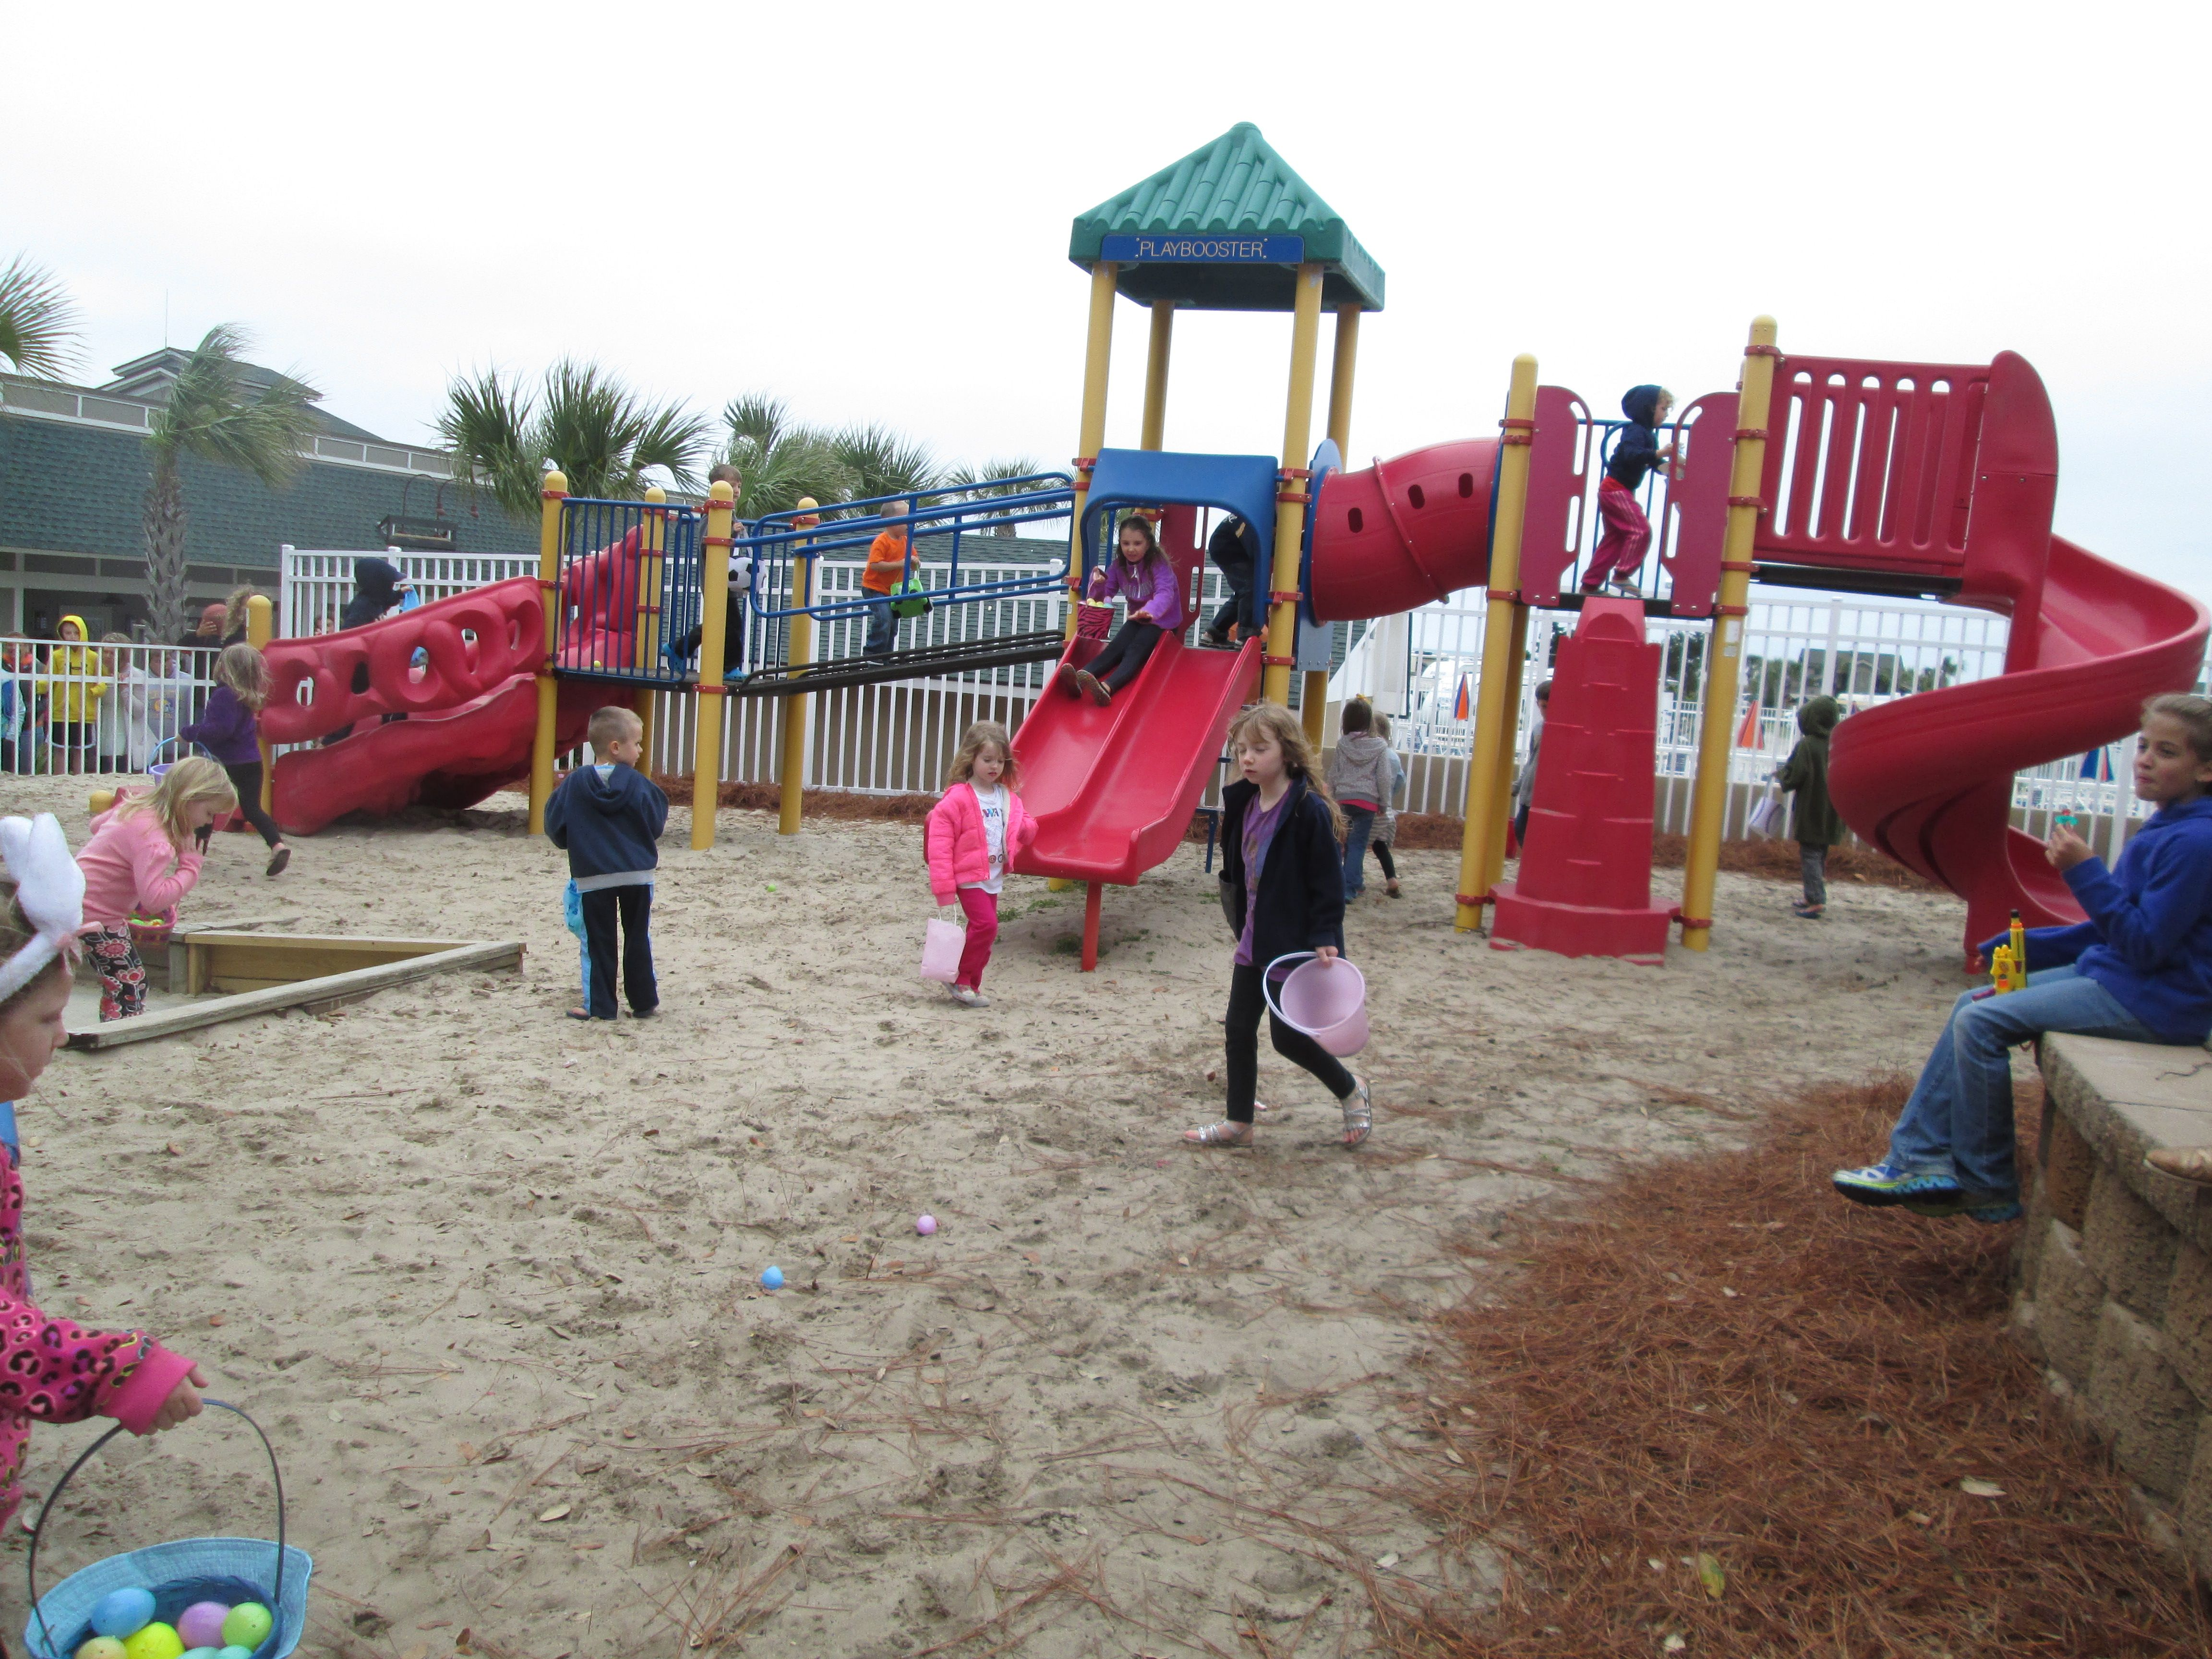 Easter Egg Hunt At The Myrtle Beach Travel Park Myrtle Beach Travel Myrtle Beach Easter Egg Hunt